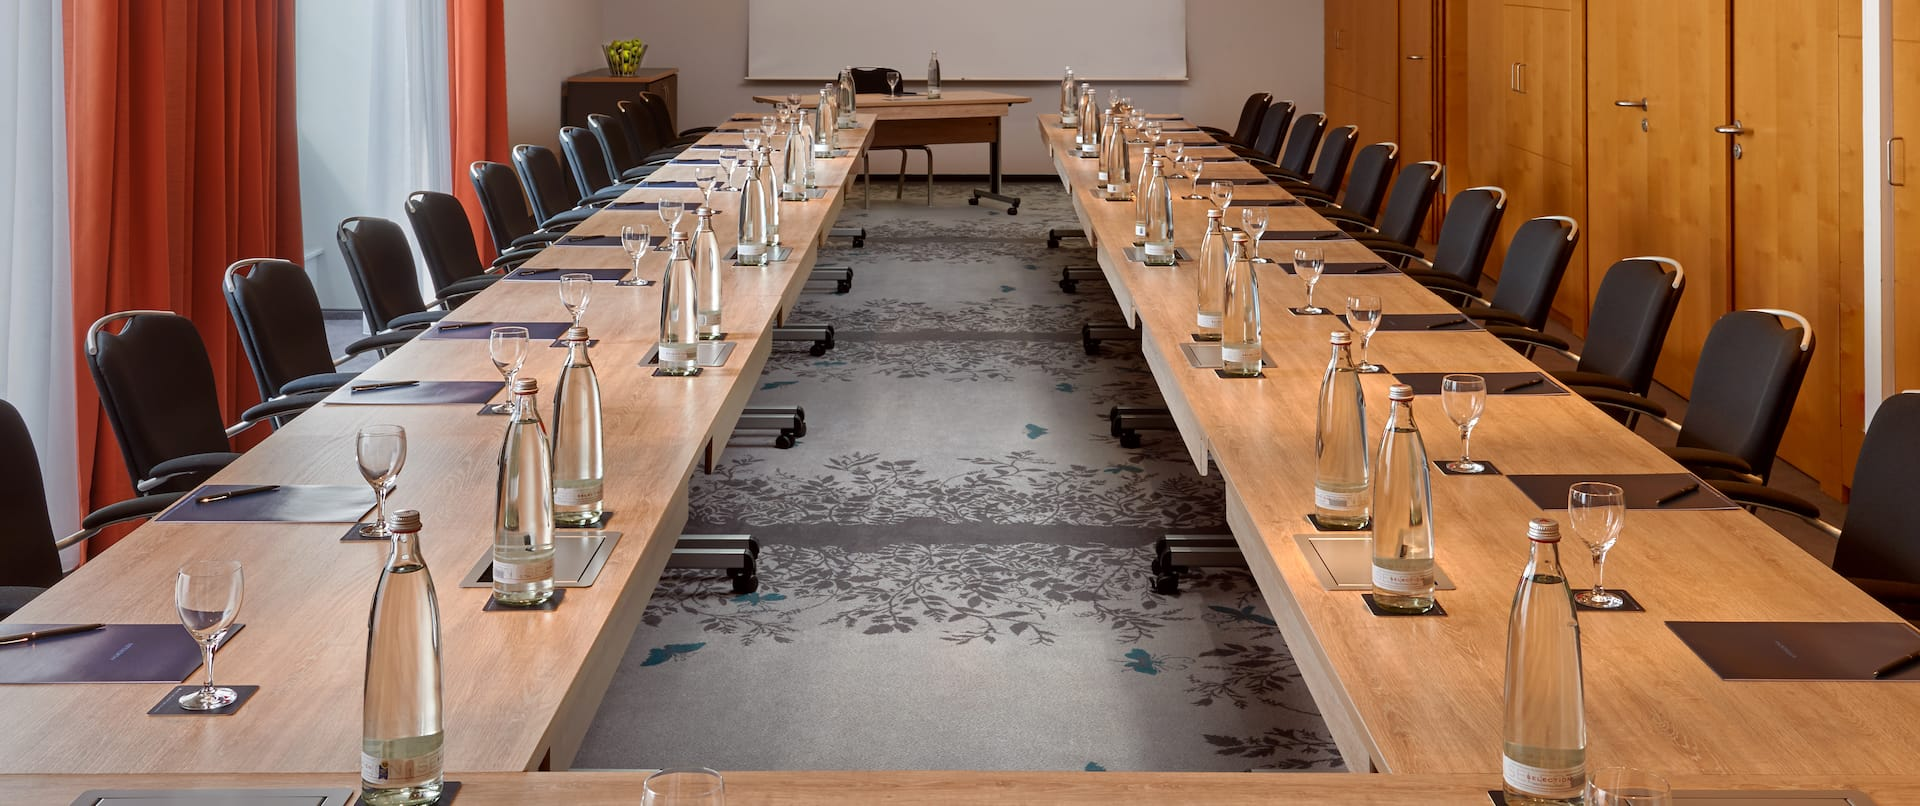 Long U-Shaped Meeting Table